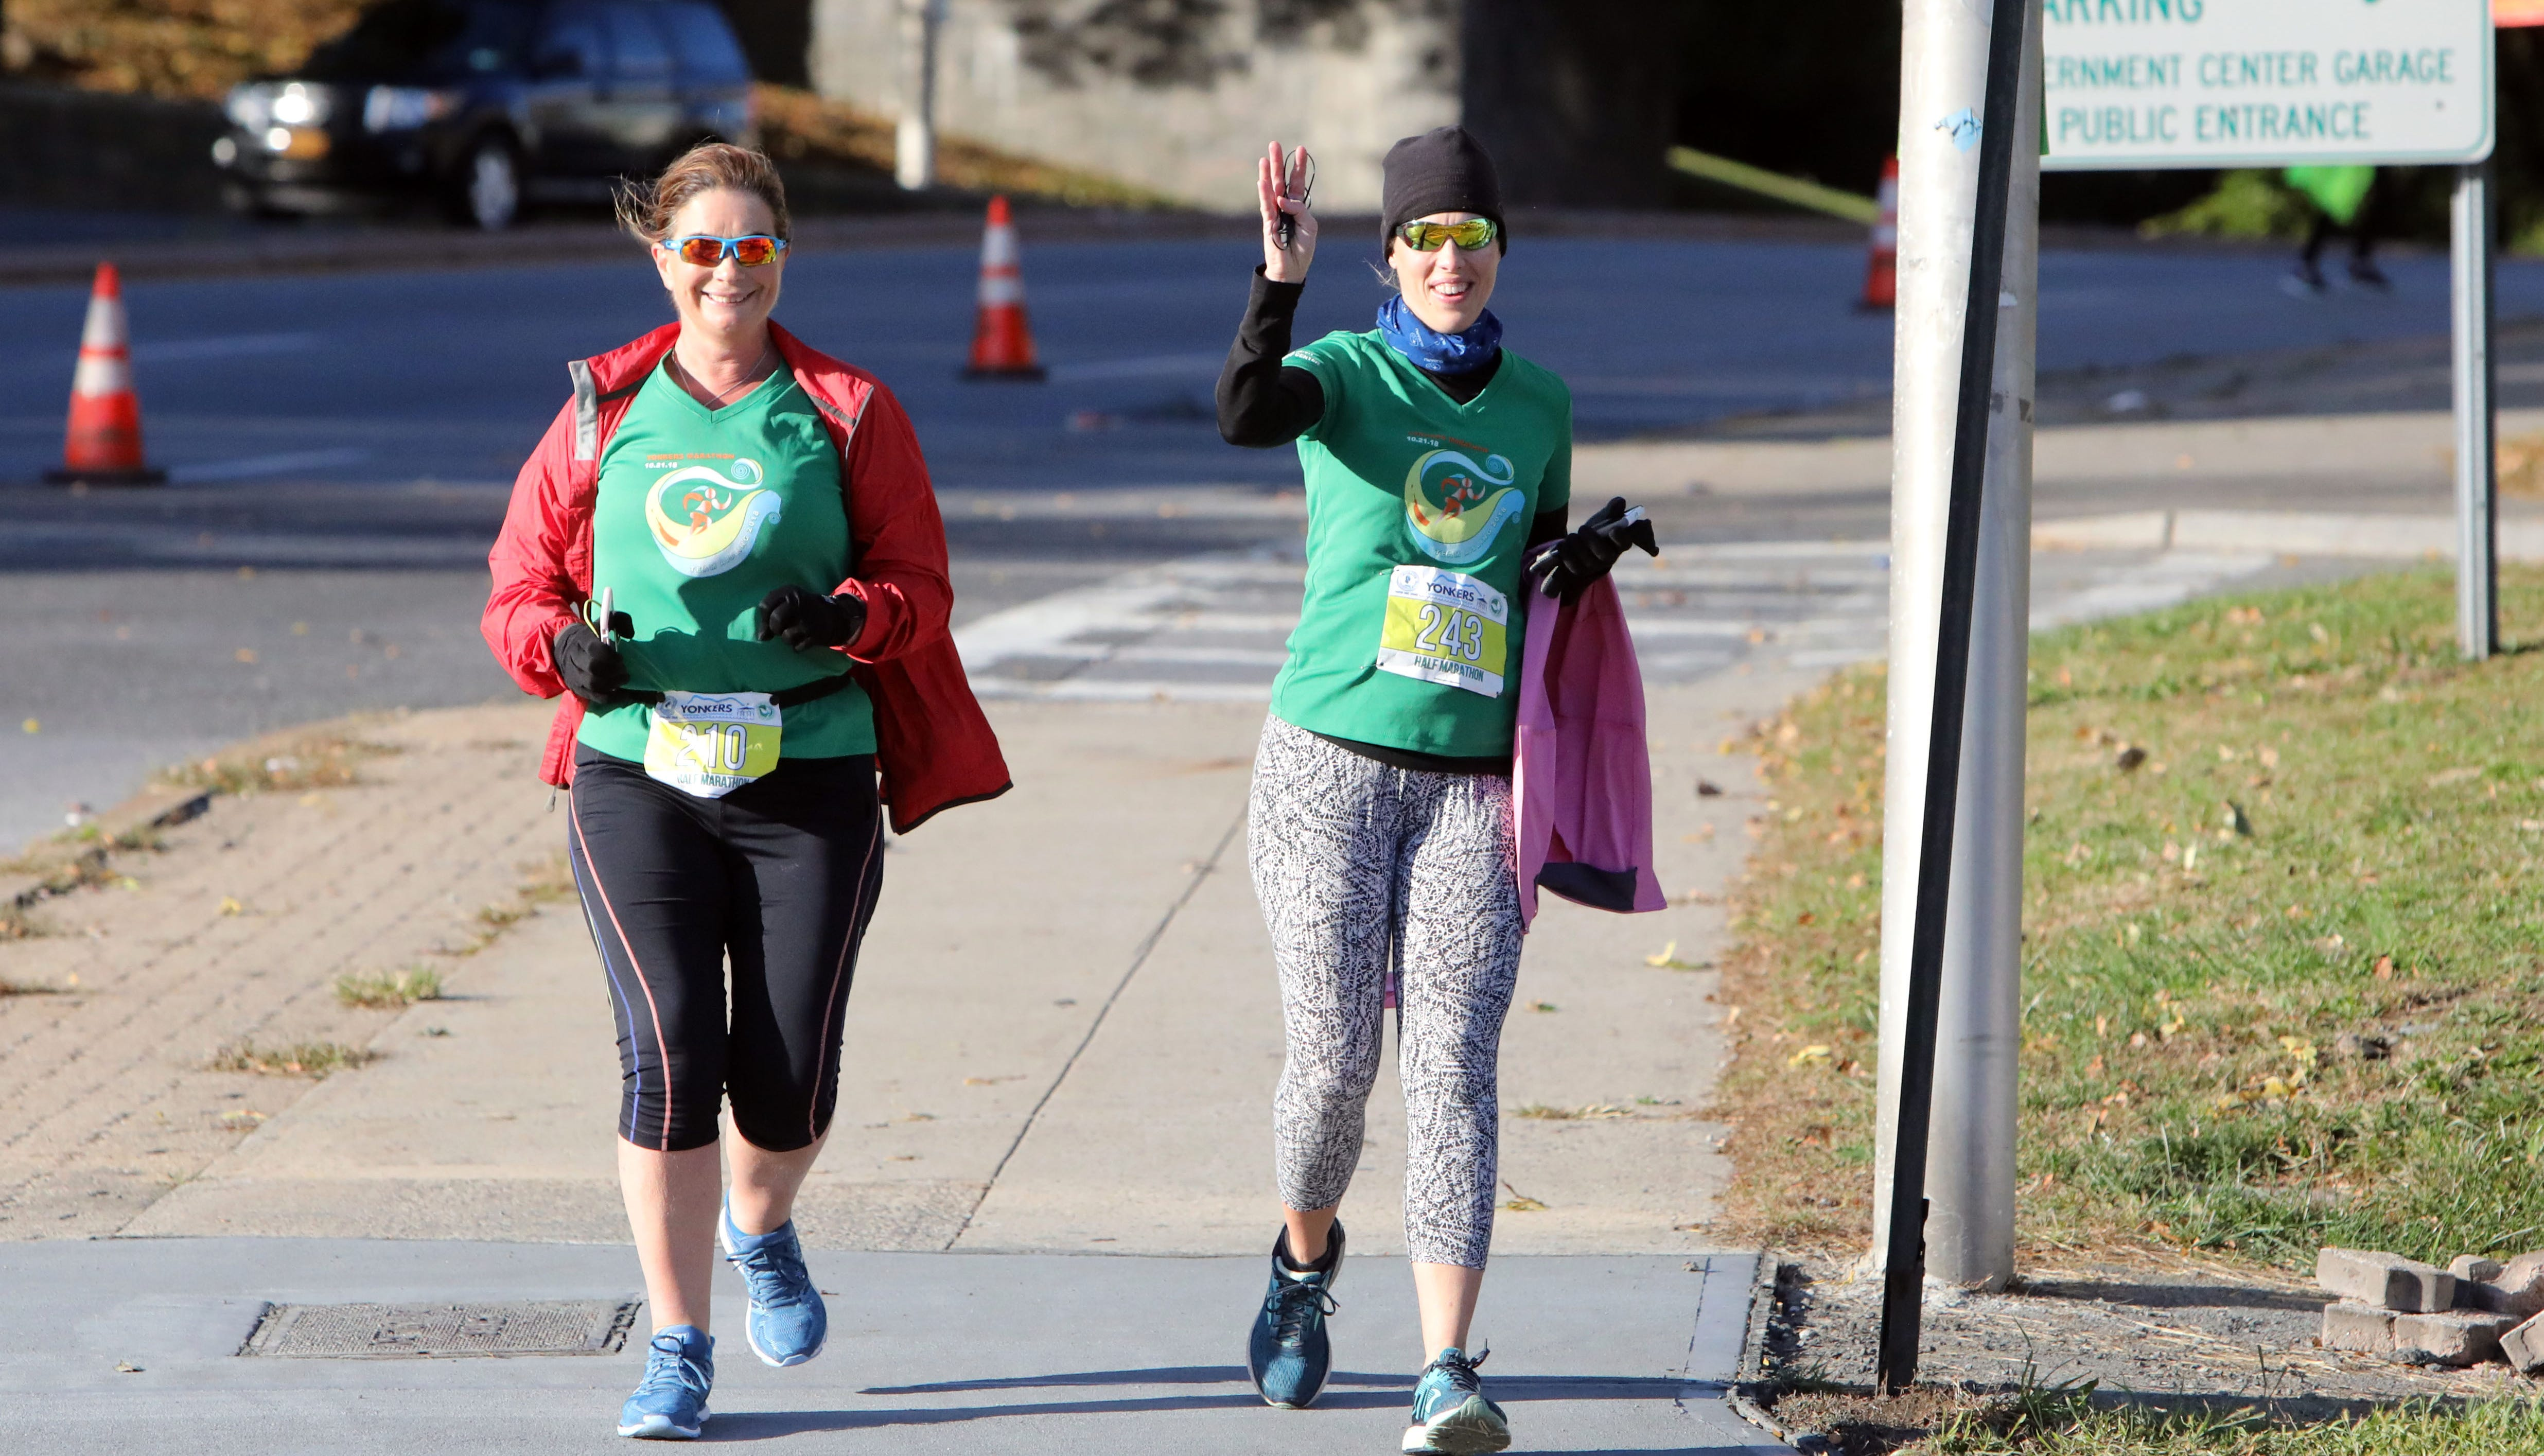 Yonkers Marathon rebirth: Races draw nearly five times as many runners as last year